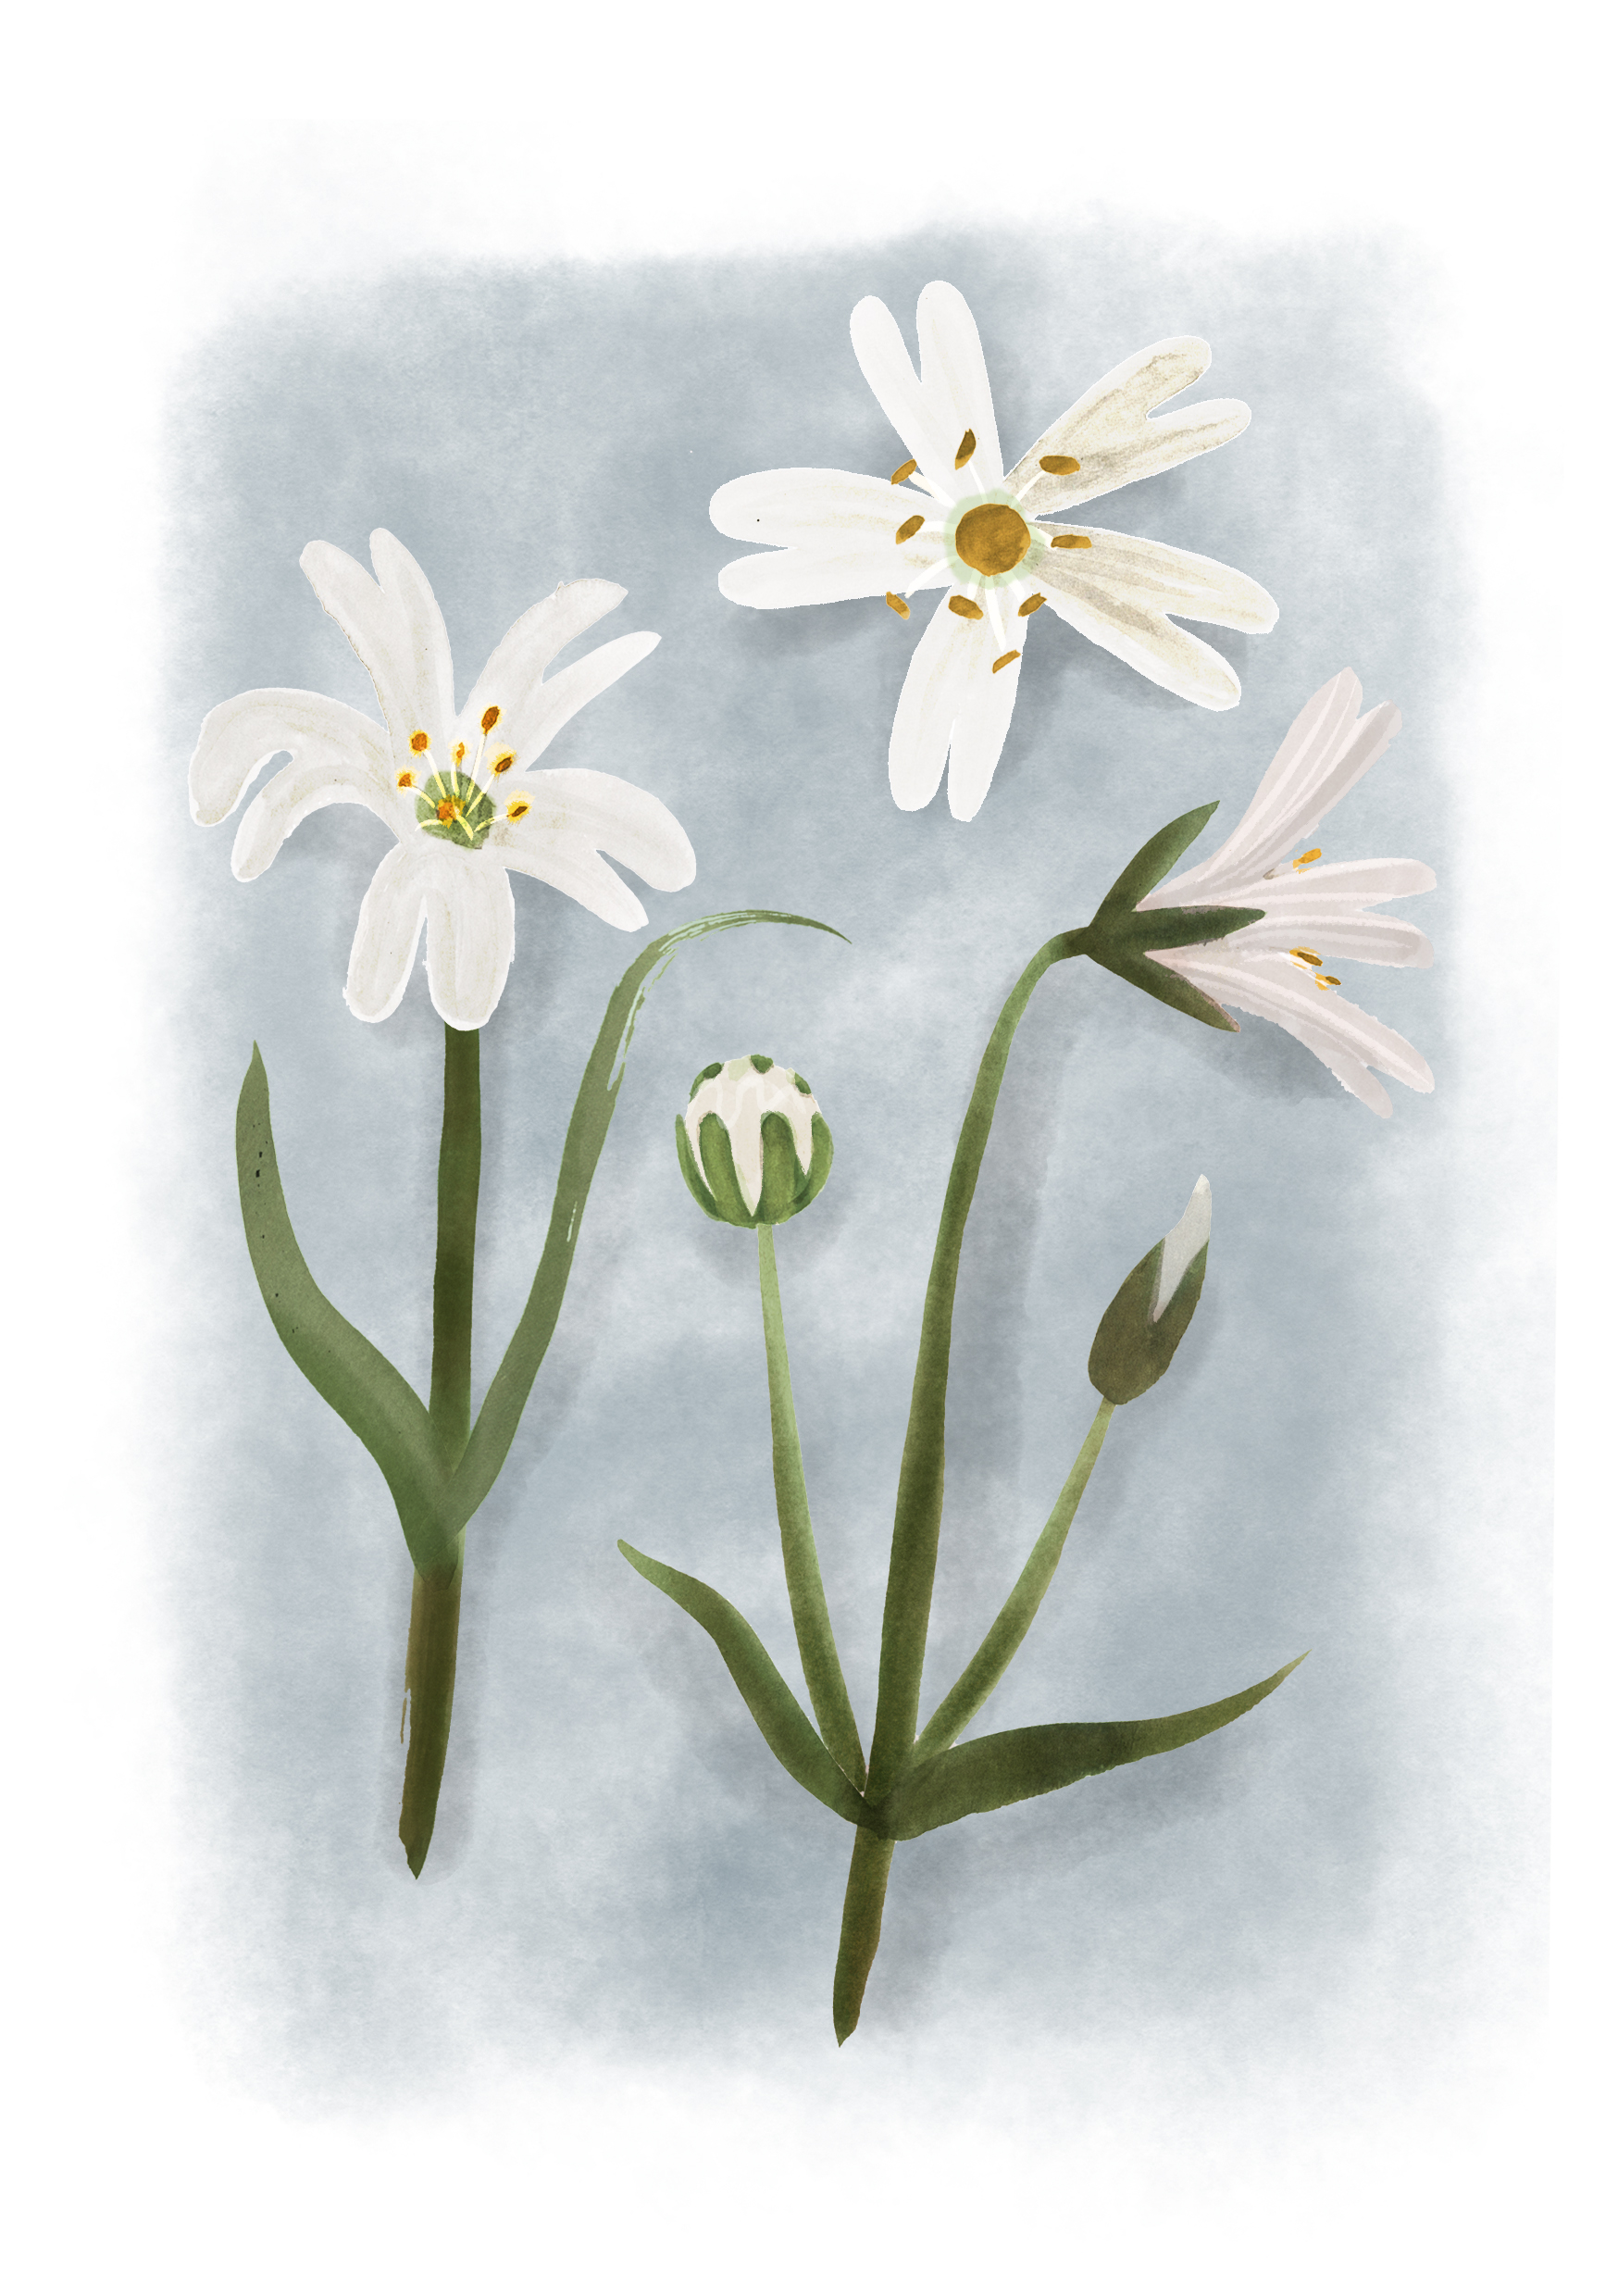 Greater Stitchwort.jpg